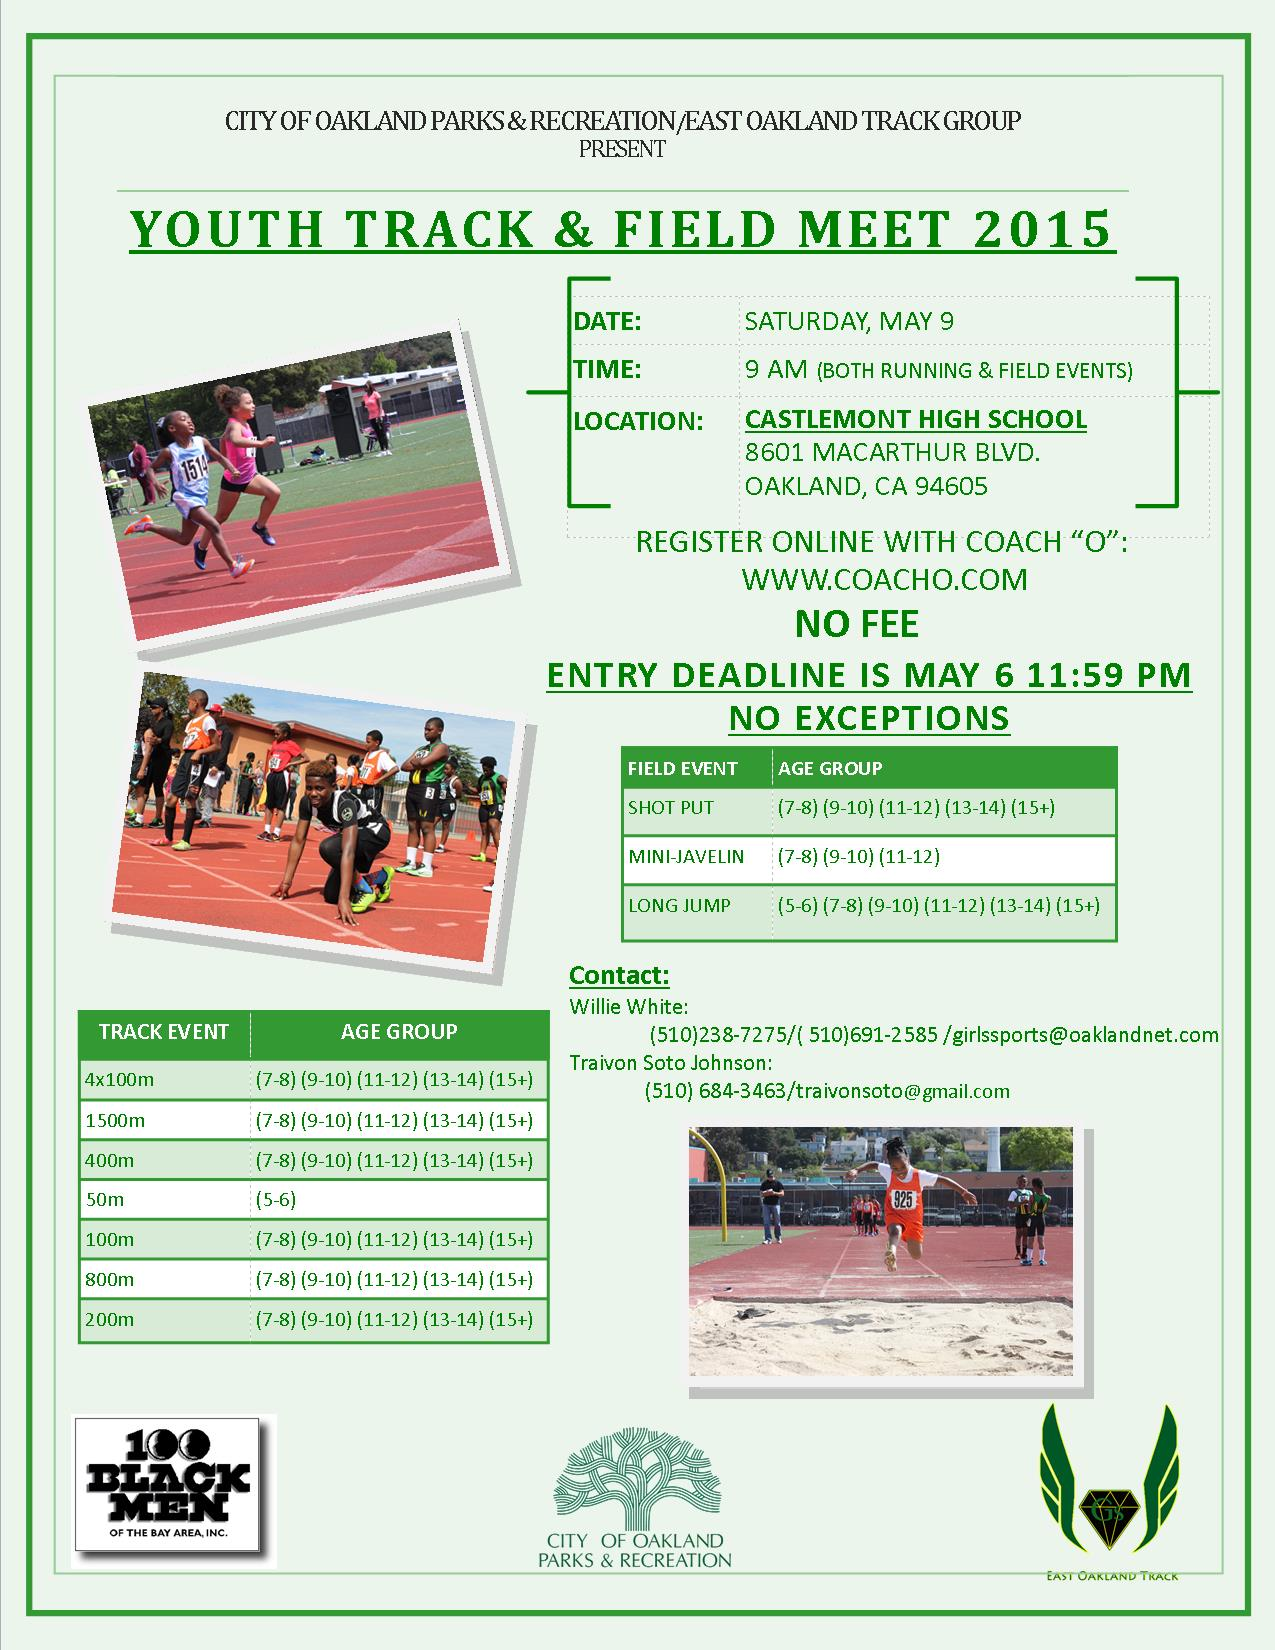 OPR track & field may 9